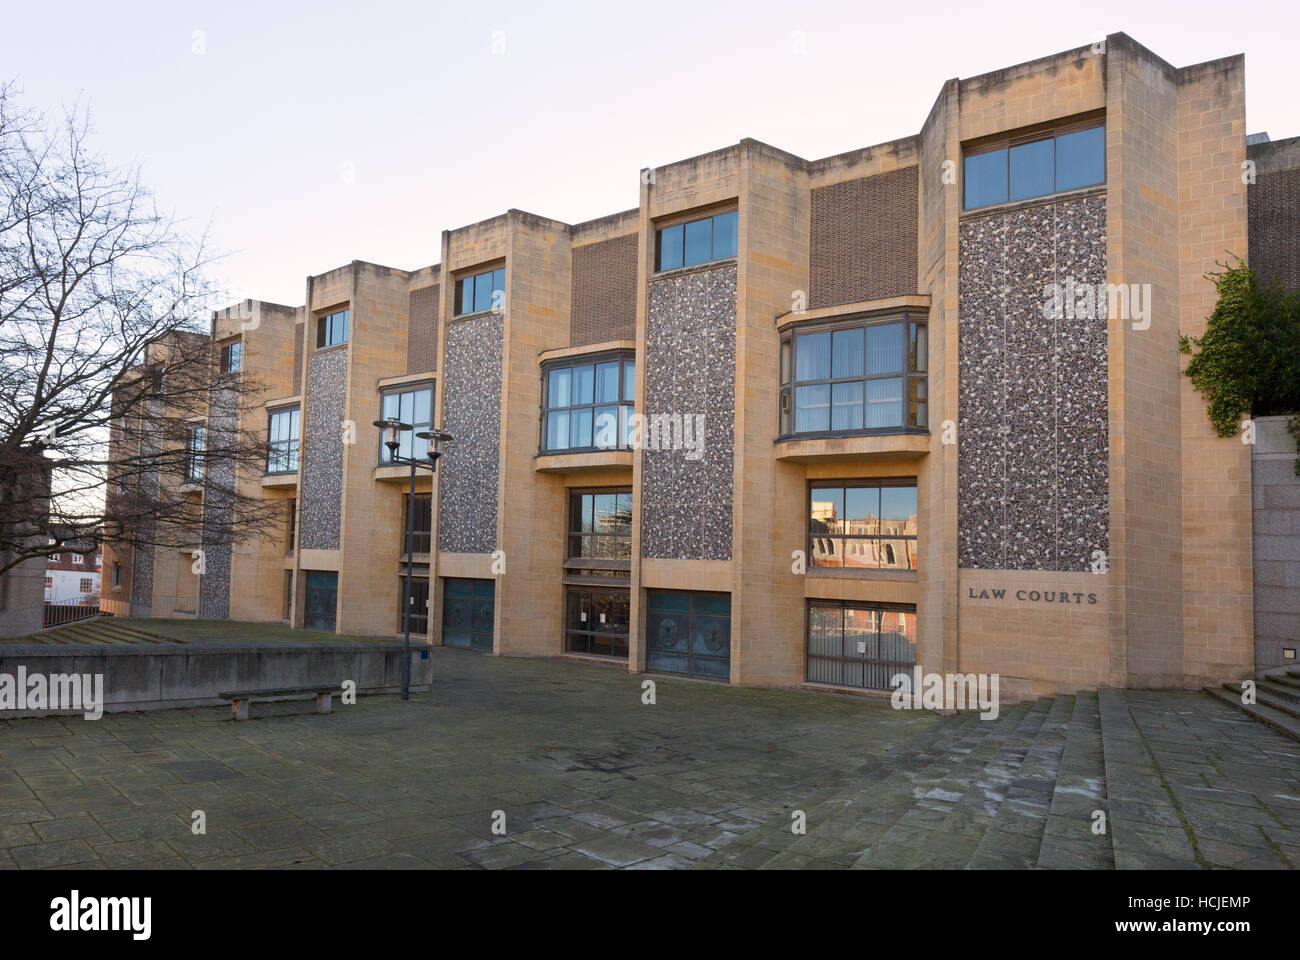 Winchester Crown Court  Law Courts,  Hampshire UK - Stock Image